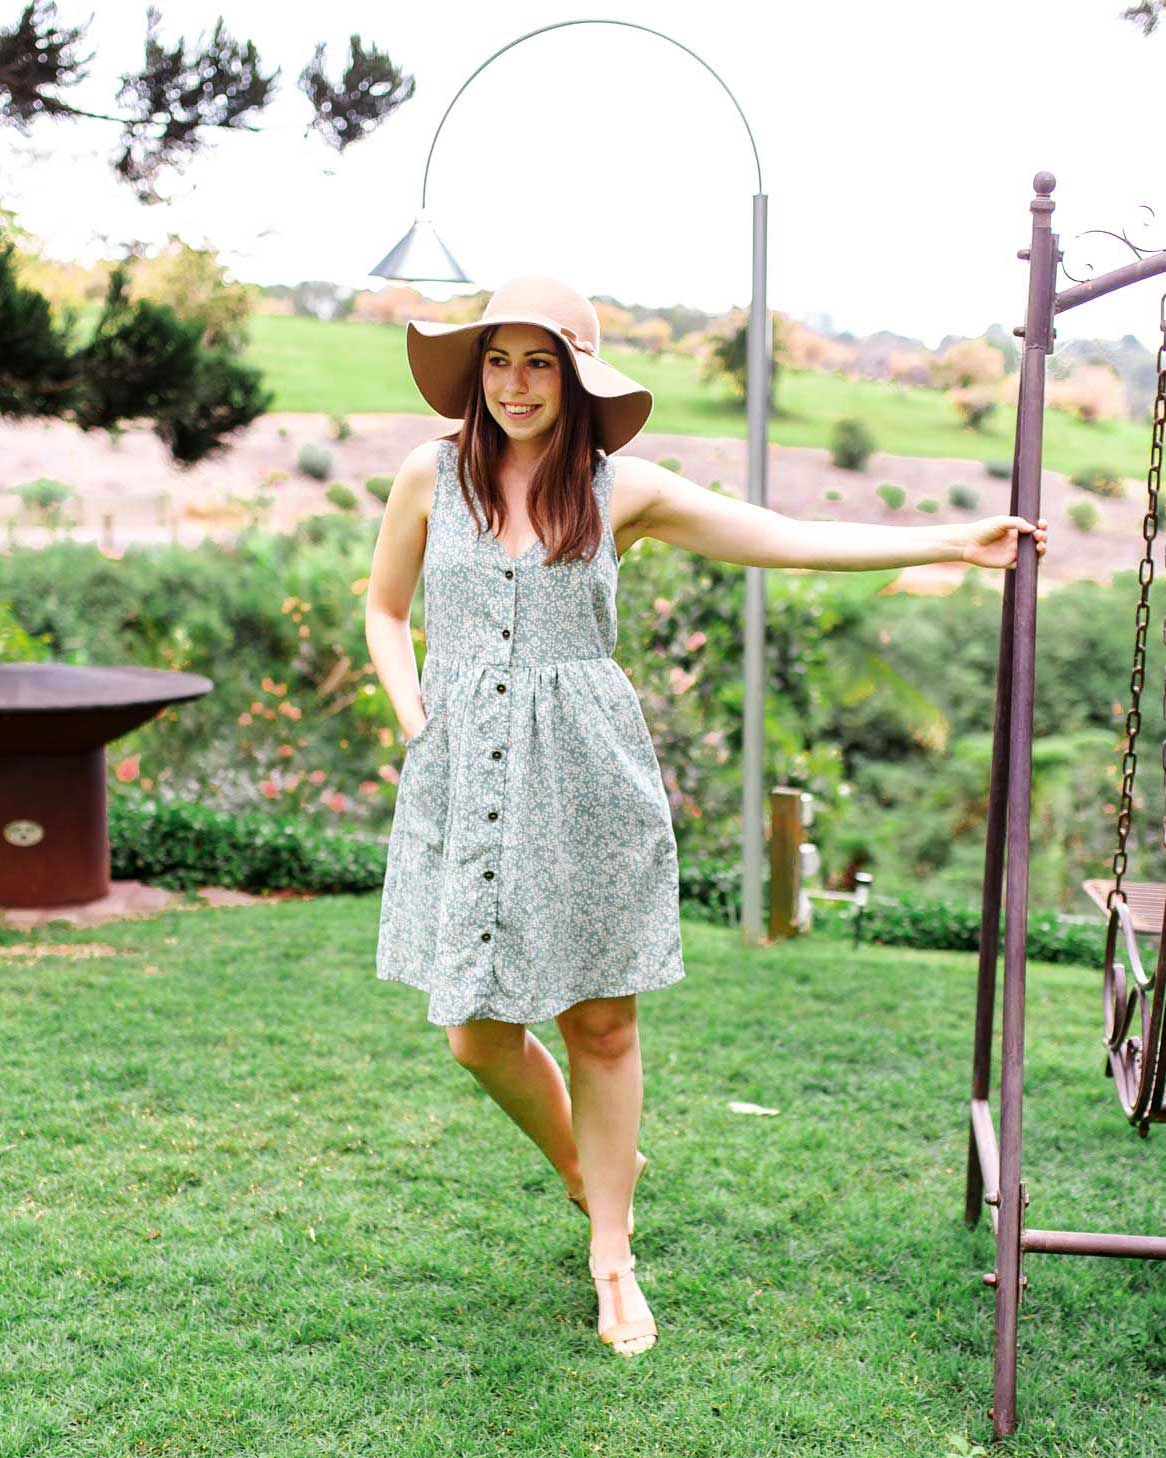 Summery Feeding Friendly Dresses with Buttons | MOOLK